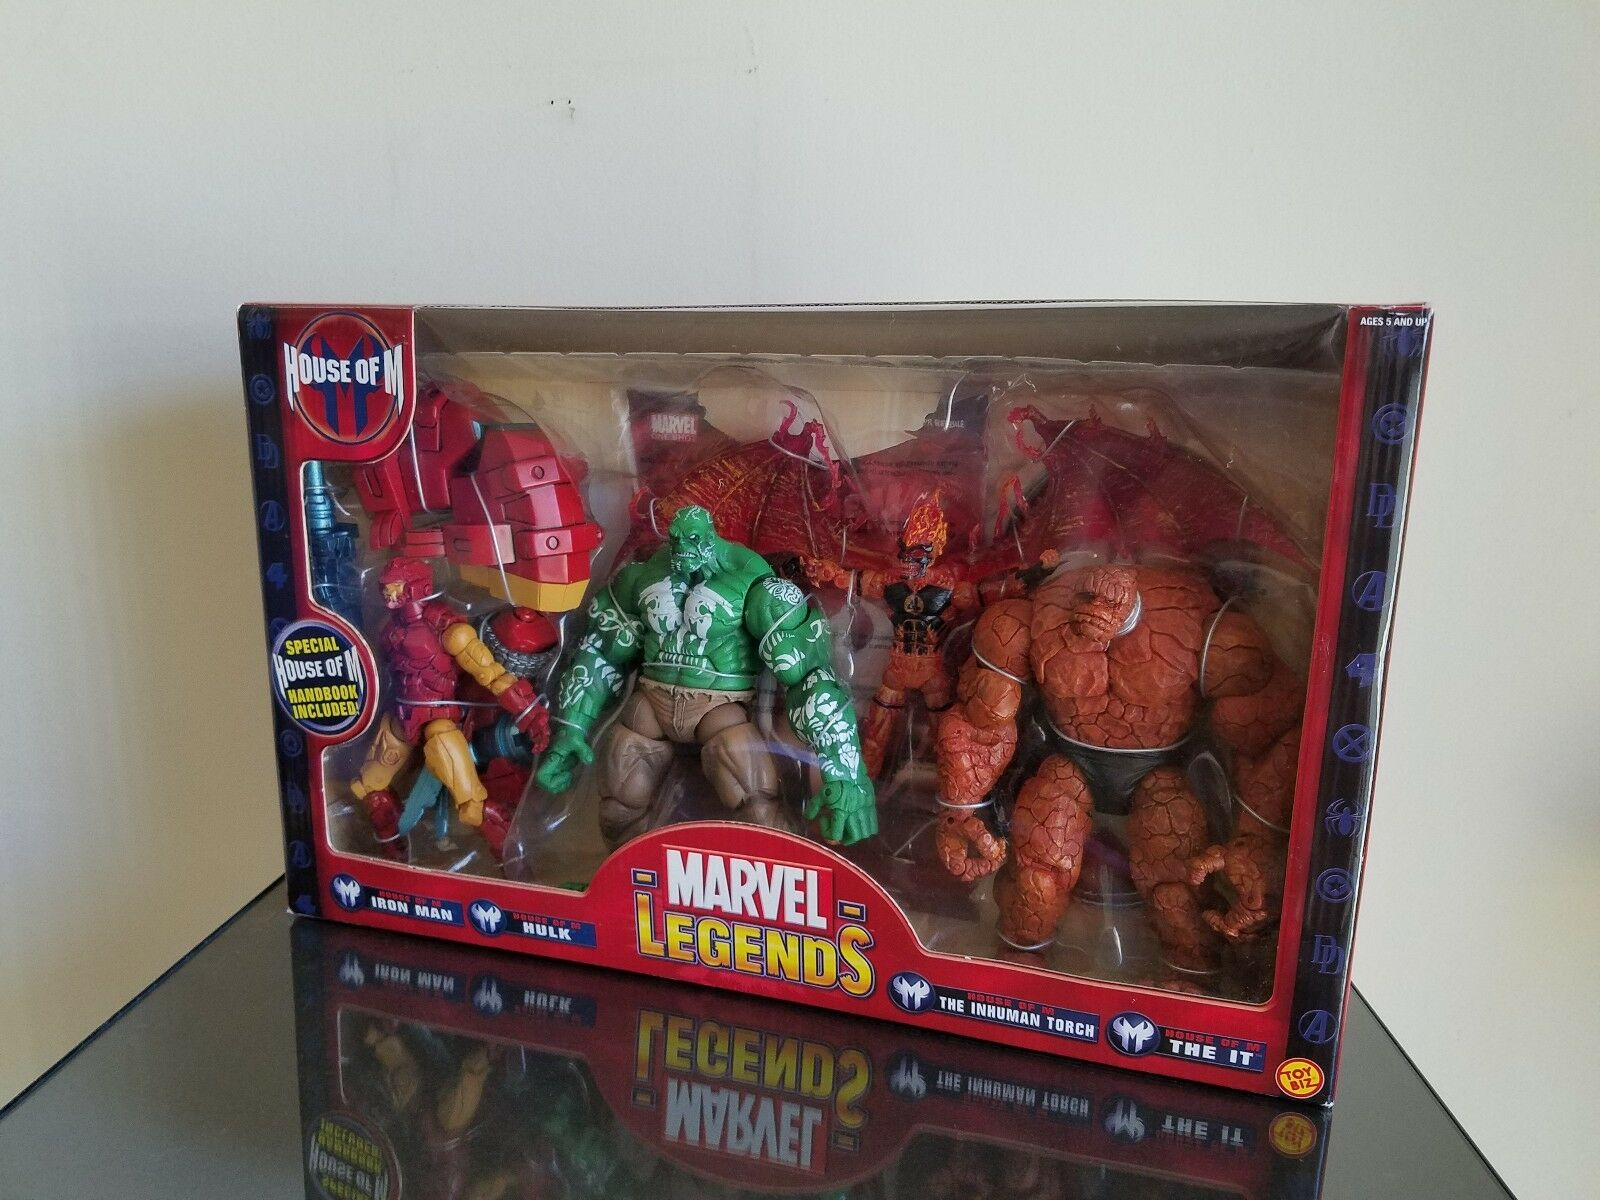 MARVEL LEGENDS HOUSE OF M 5 FIGURE BOX SET Toy Biz